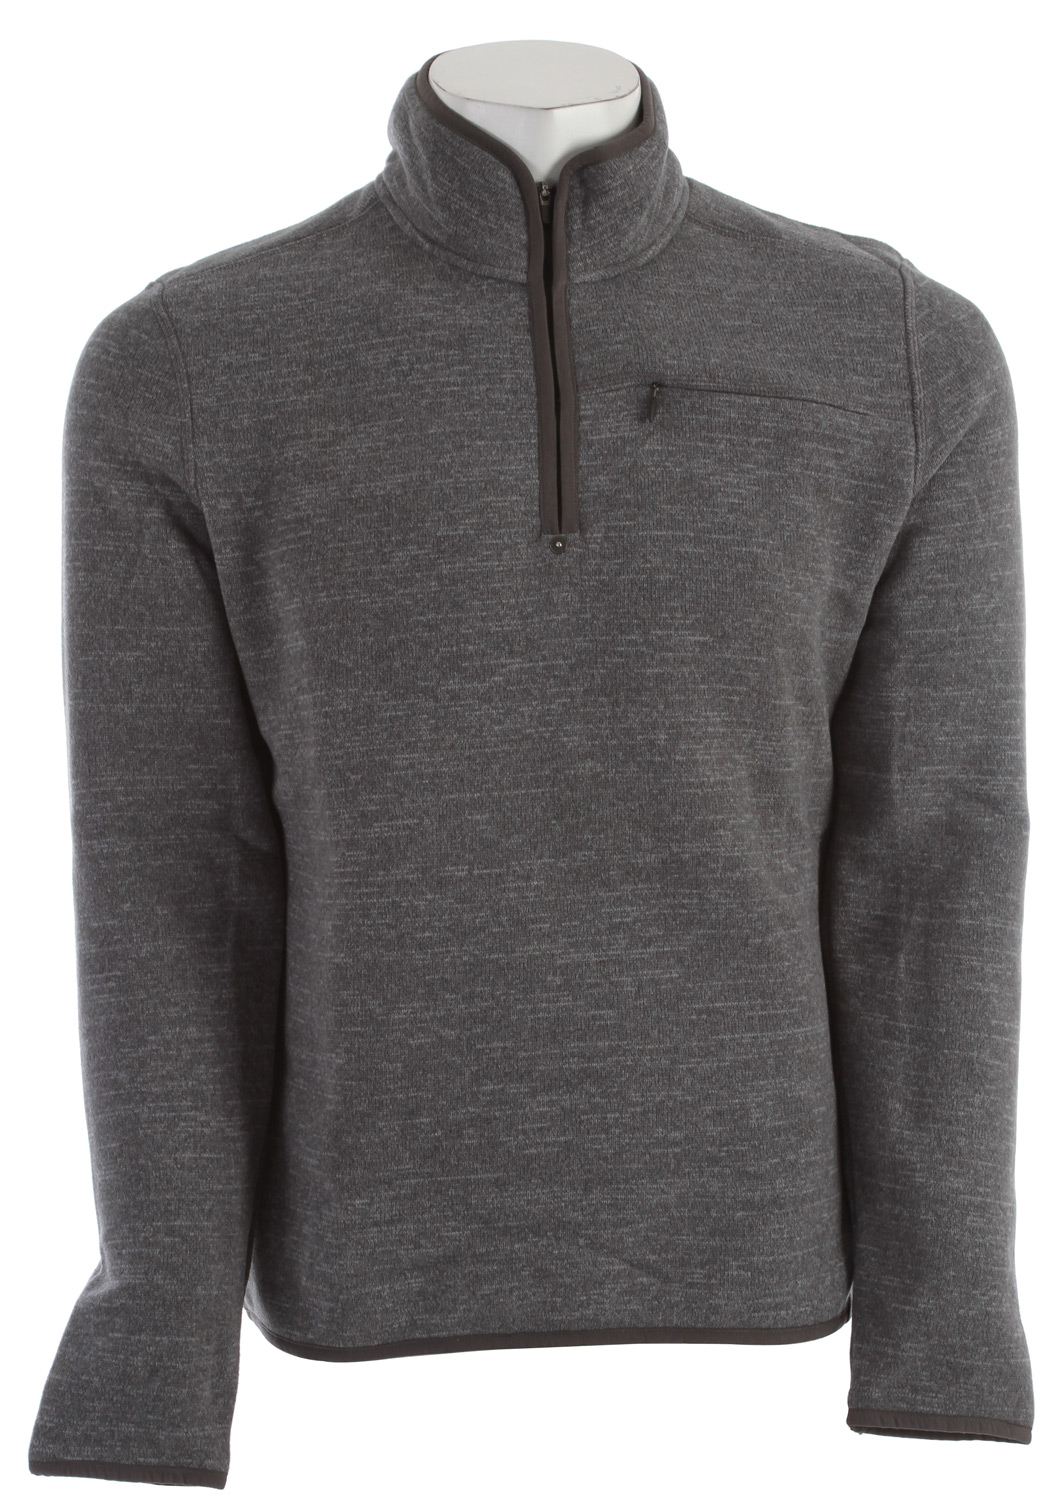 Key Features of the Prana Bryce 1/4 Zip Sweater: Performance heathered sweater face fleece with thermal properties Front chest pocket with invisible zipper closure Peached nylon binding Back yoke embroidery Front hem loop label Standard fit 100% polyester - $61.95